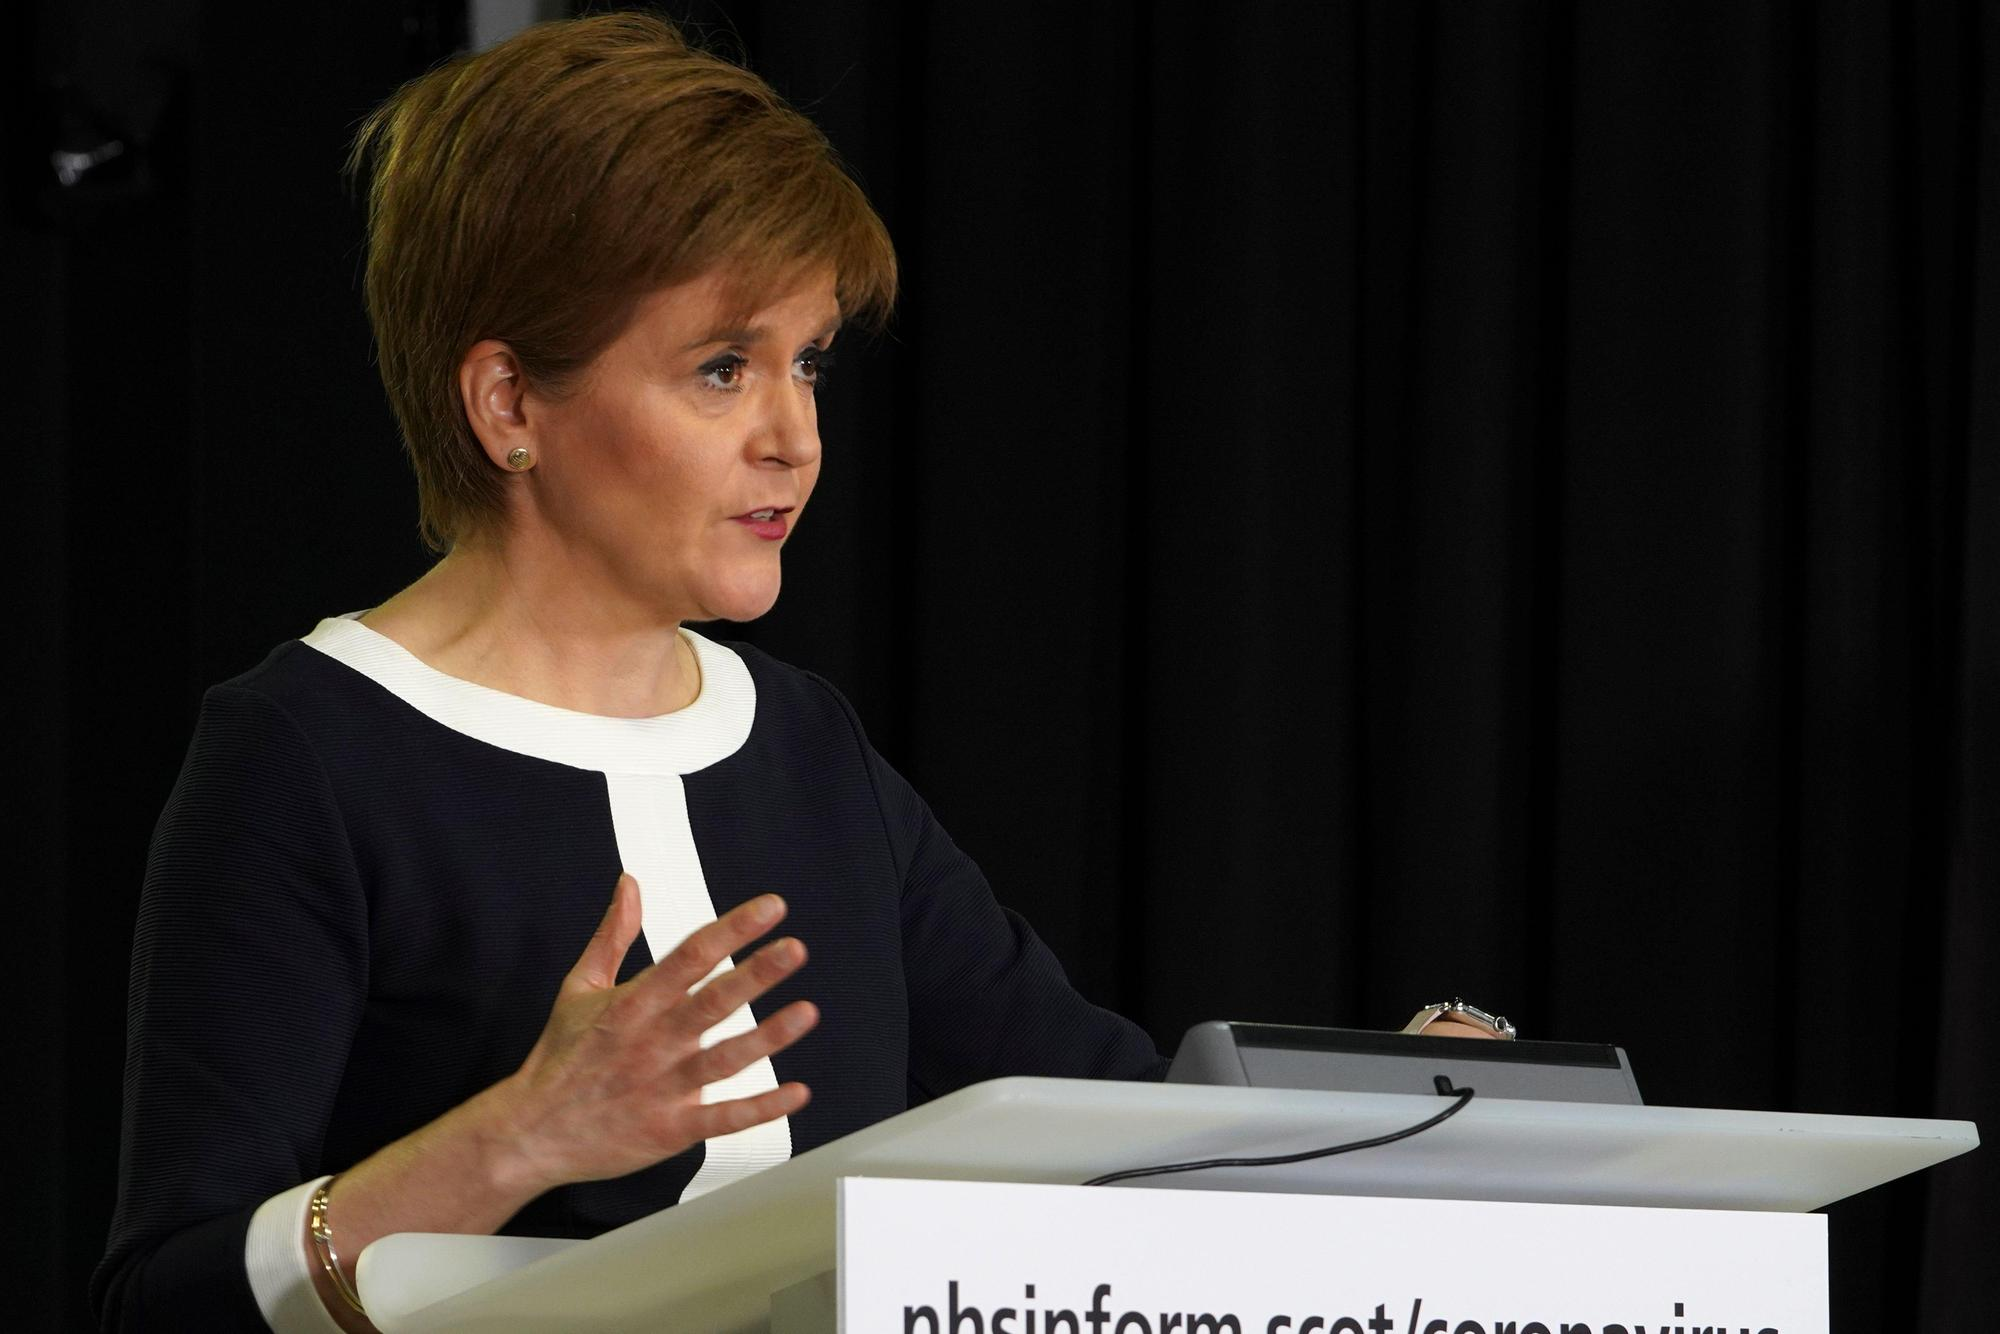 Nicola Sturgeon: I will stand in 2021 Scottish Parliament election, 'bonkers' to question my commitment to Scottish independence